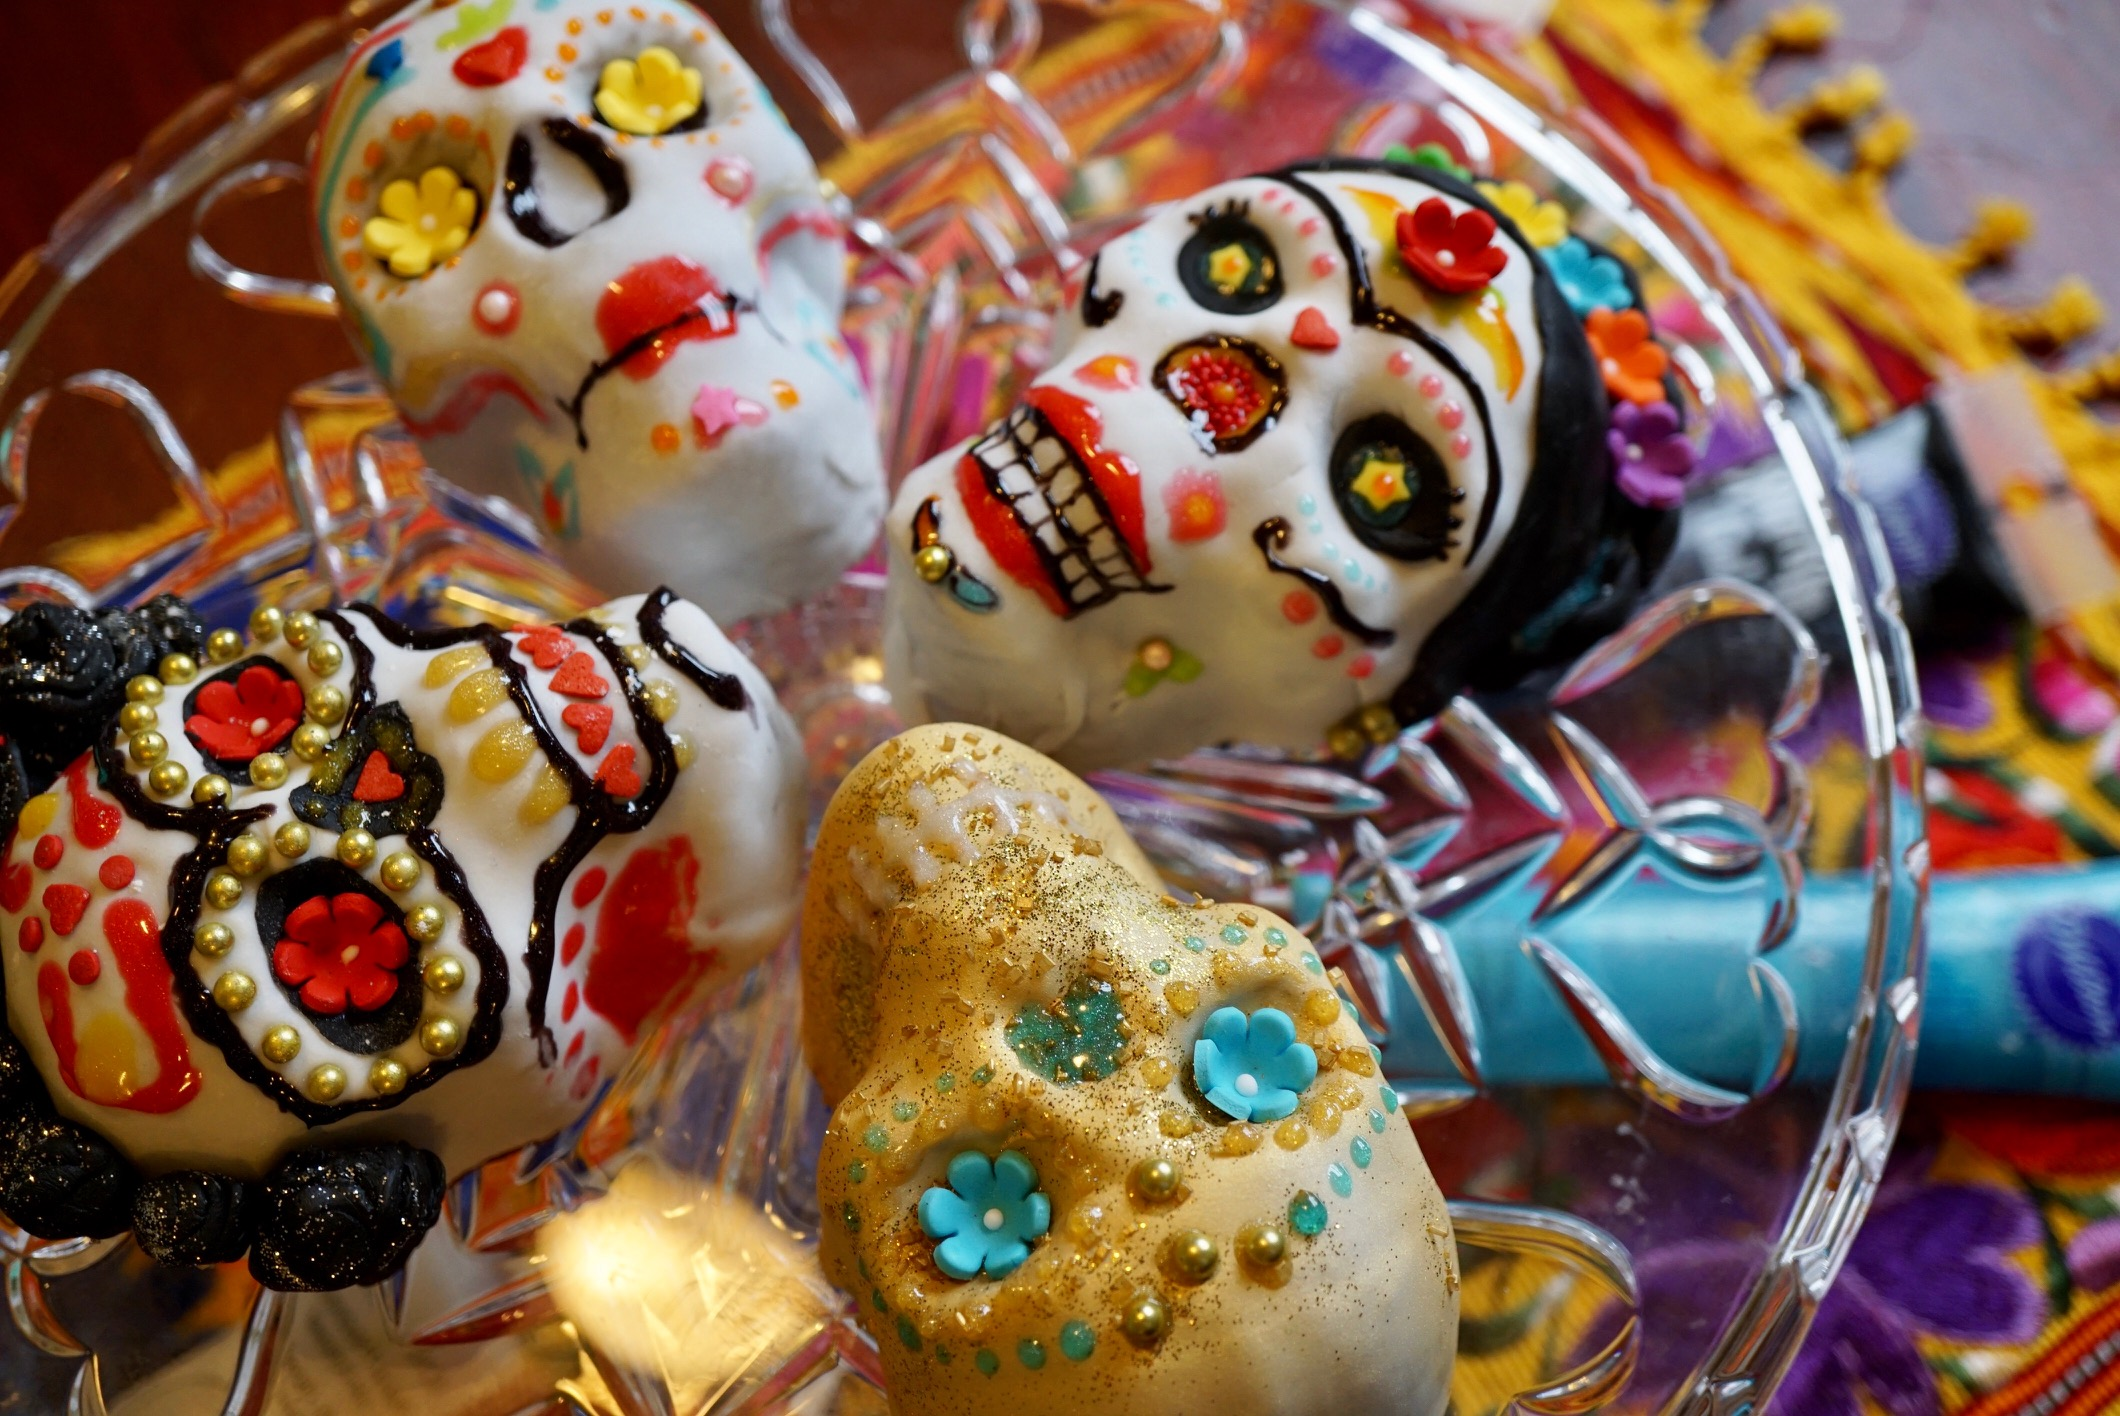 How To Have A Dia De Los Muertos Mini Cake Decorating Party